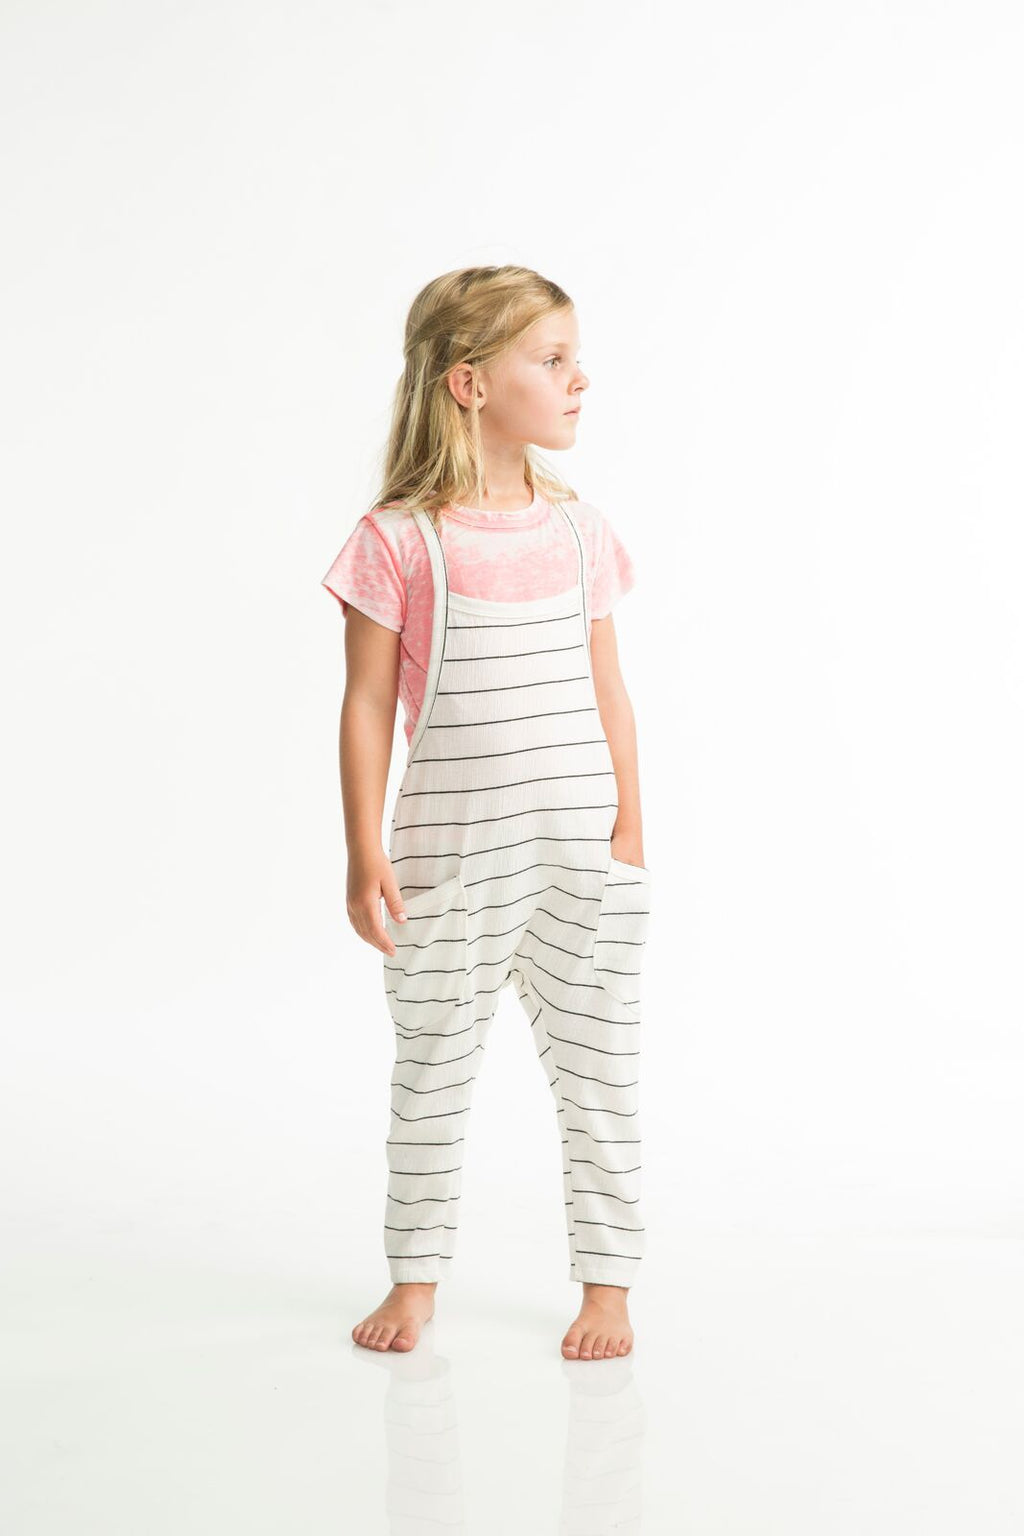 Joah Love Payton Unisex Gauze Stripe Overalls - Ivory  White overalls with black stripes  Made in the USA  Children's, Gender neutral, Baby girl, Baby boy, Toddler girls, Toddler boys, One piece, Overalls, Dungarees, Joah Love